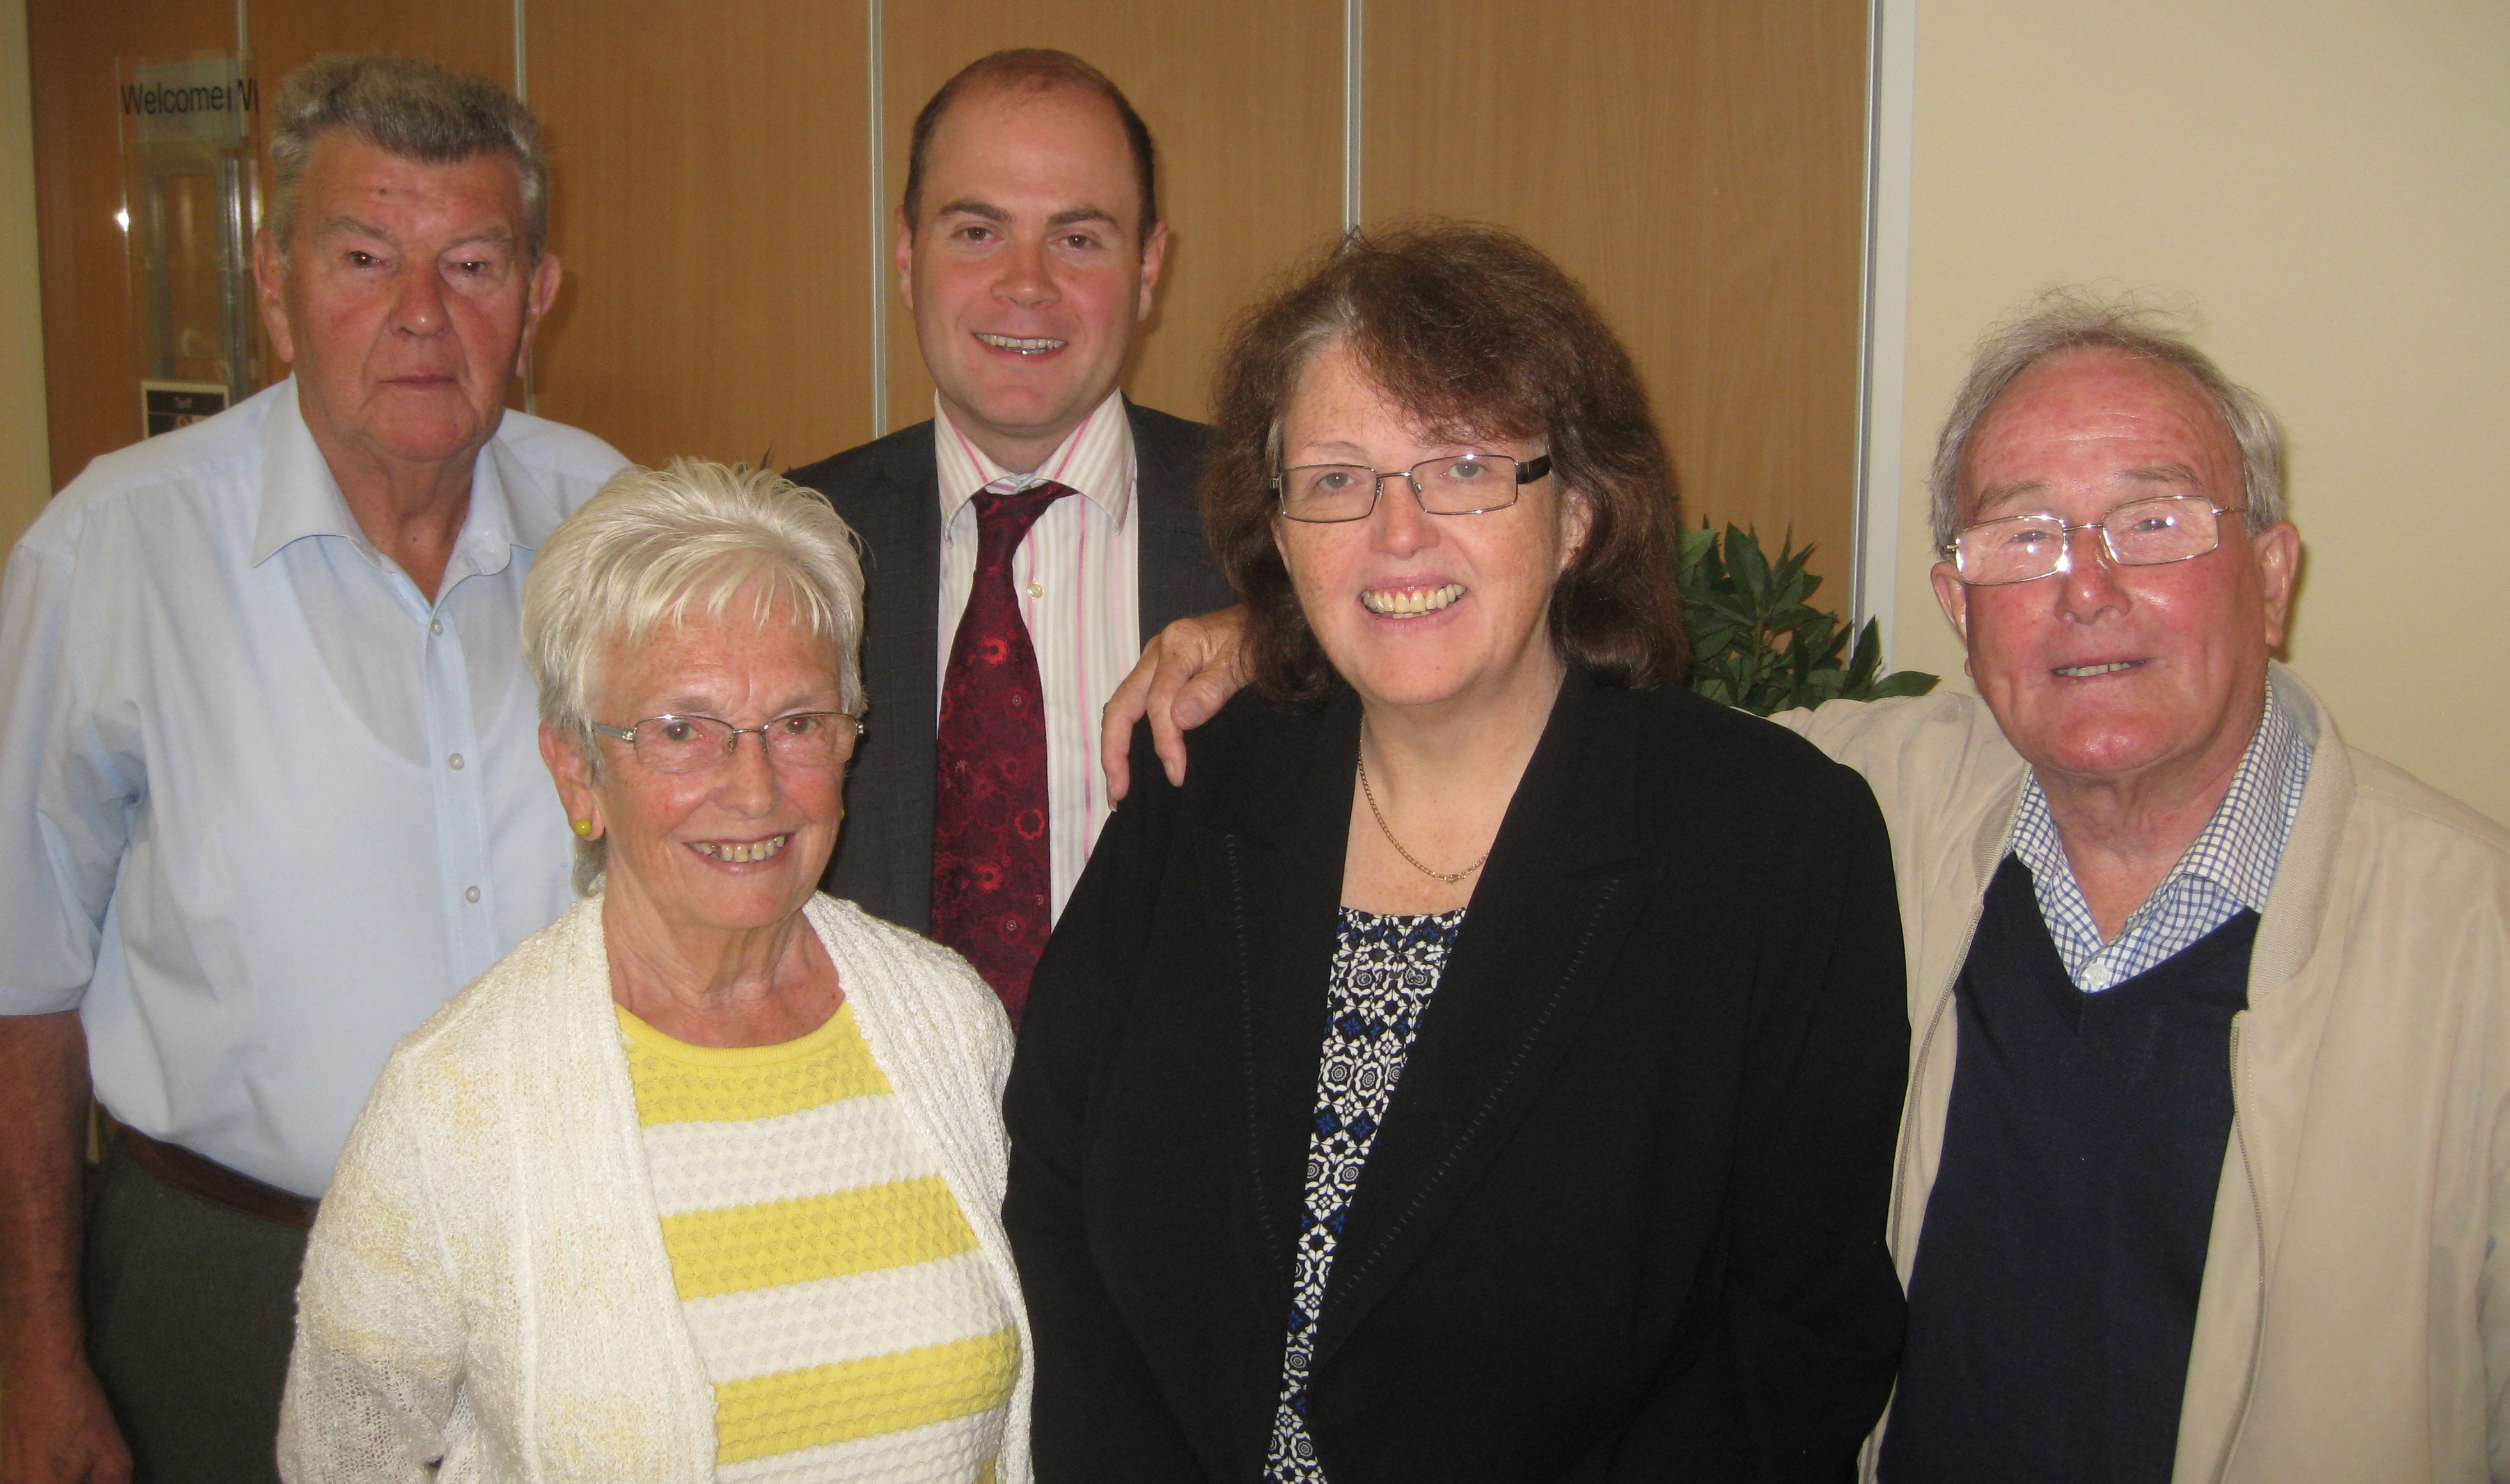 Rosie_Cooper_MP_and_Cllr_Liam_Robinson_with_WLPF.jpg